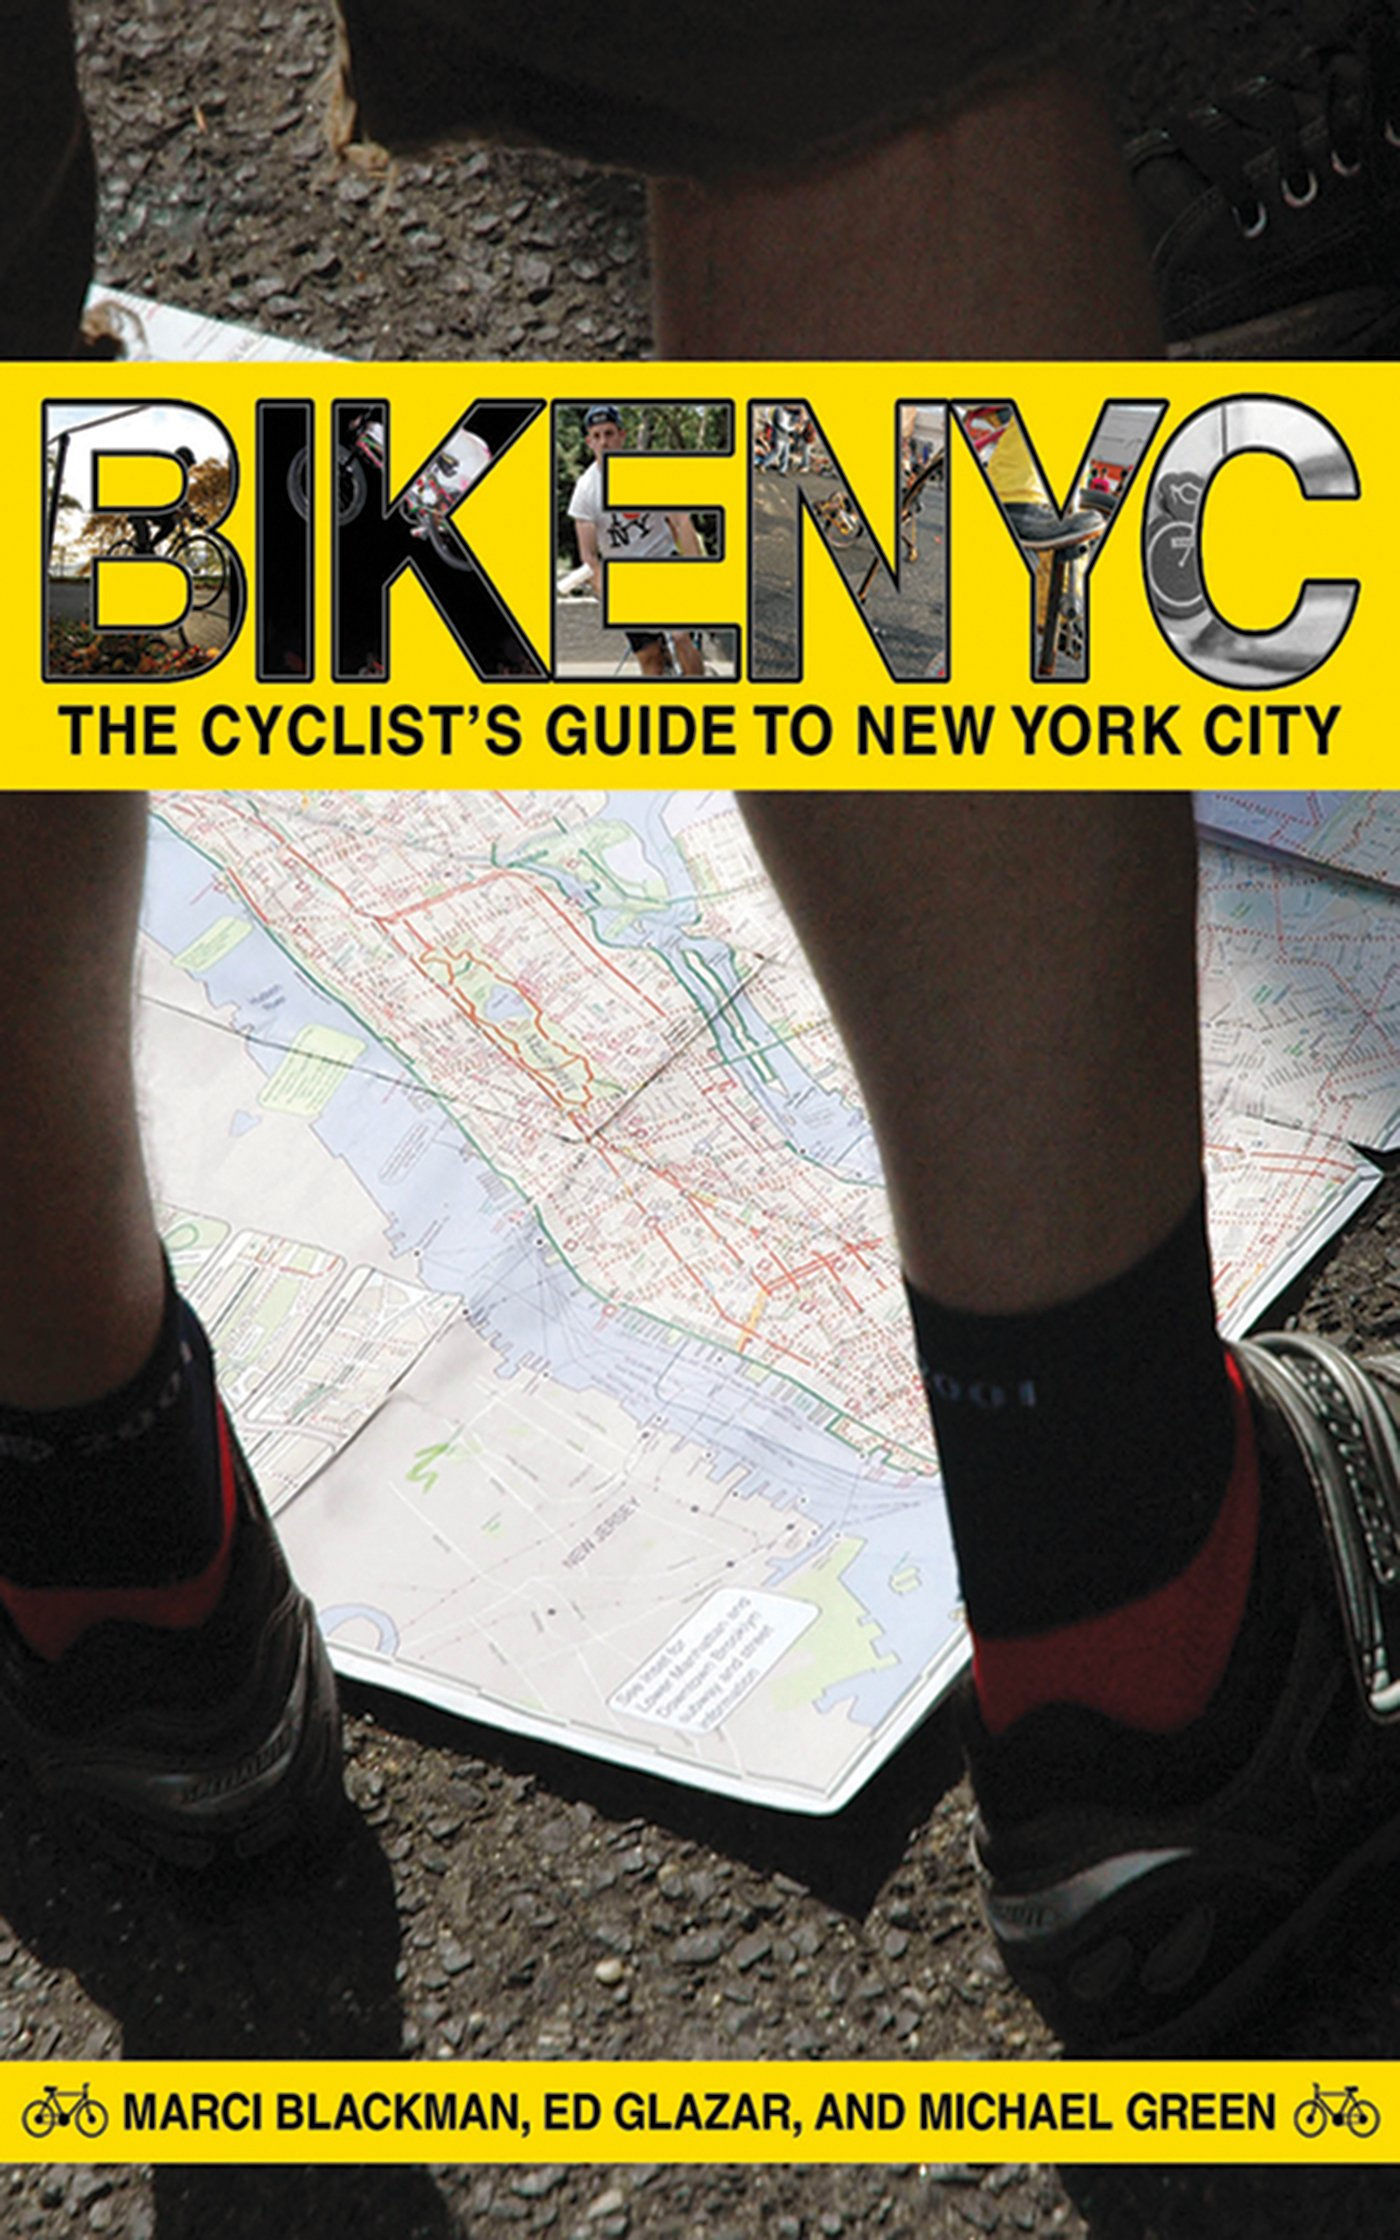 Download Bike NYC: The Cyclist's Guide to New York City PDF